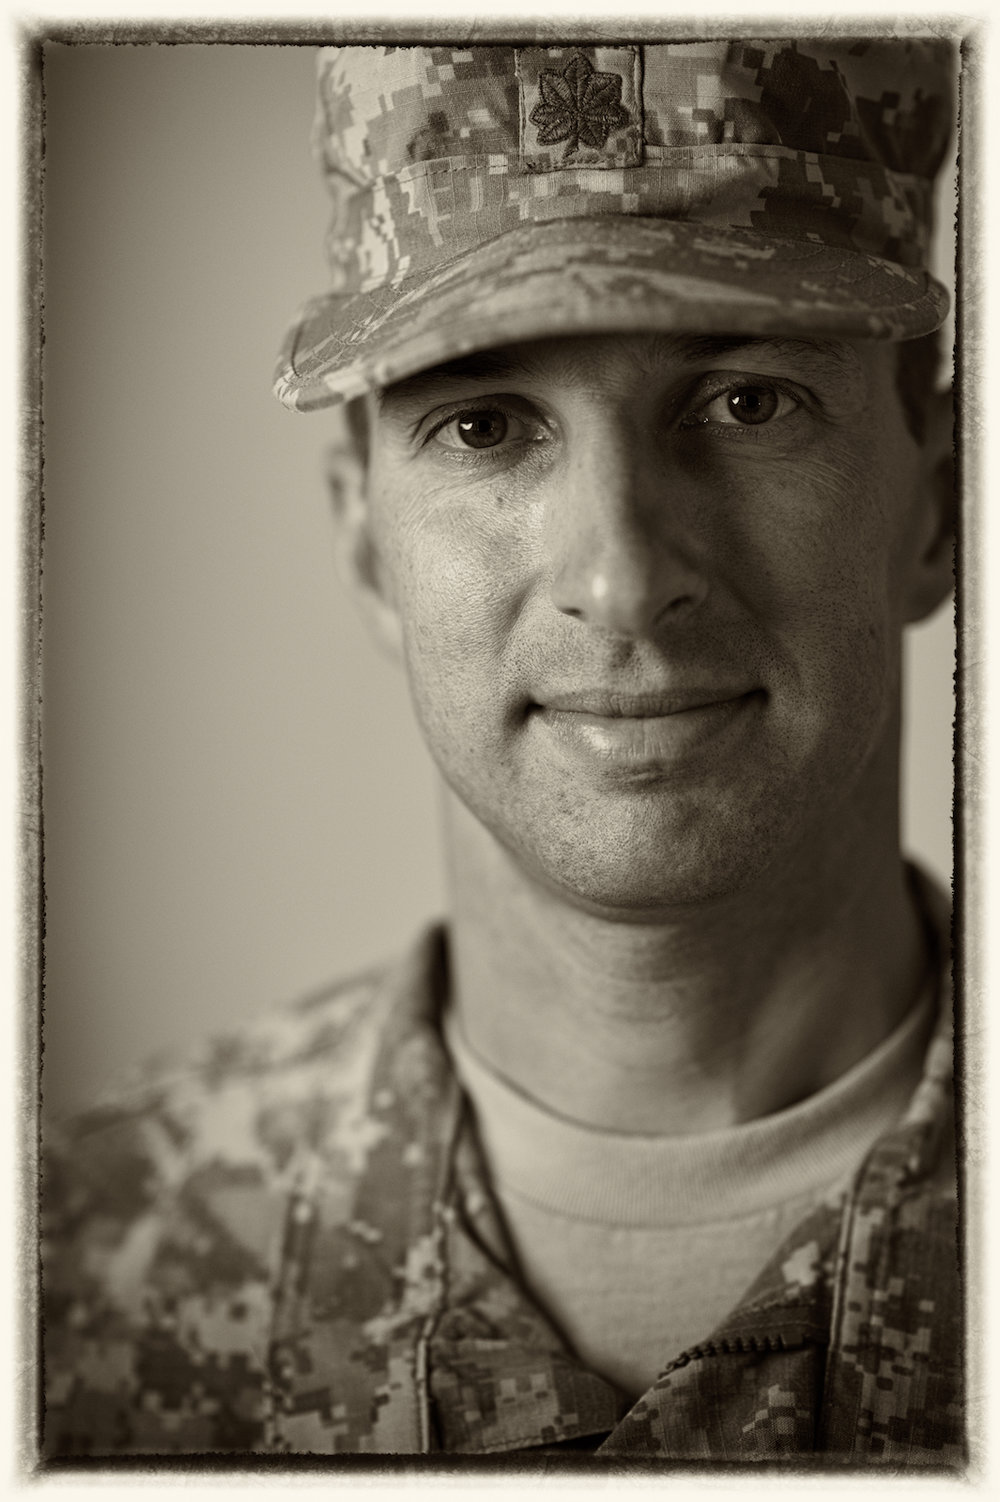 A New Orleans studio portrait headshot of an American soldier.  Image by New Orleans based portrait photographer, Marc Pagani